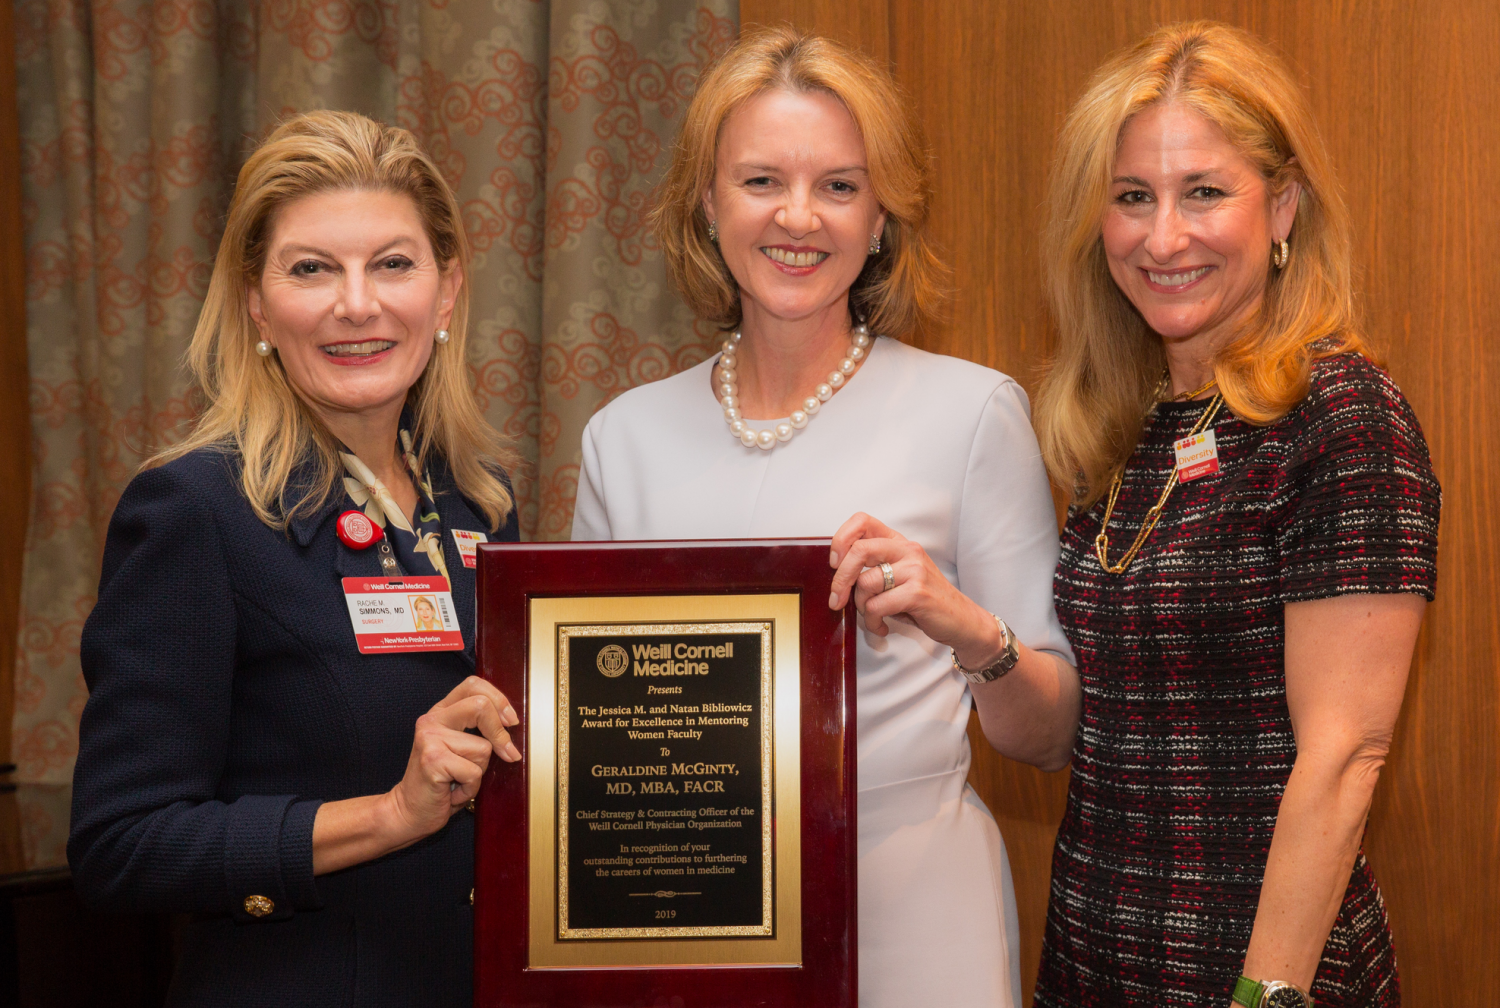 Photo of Dr. McGinty Accepting Award